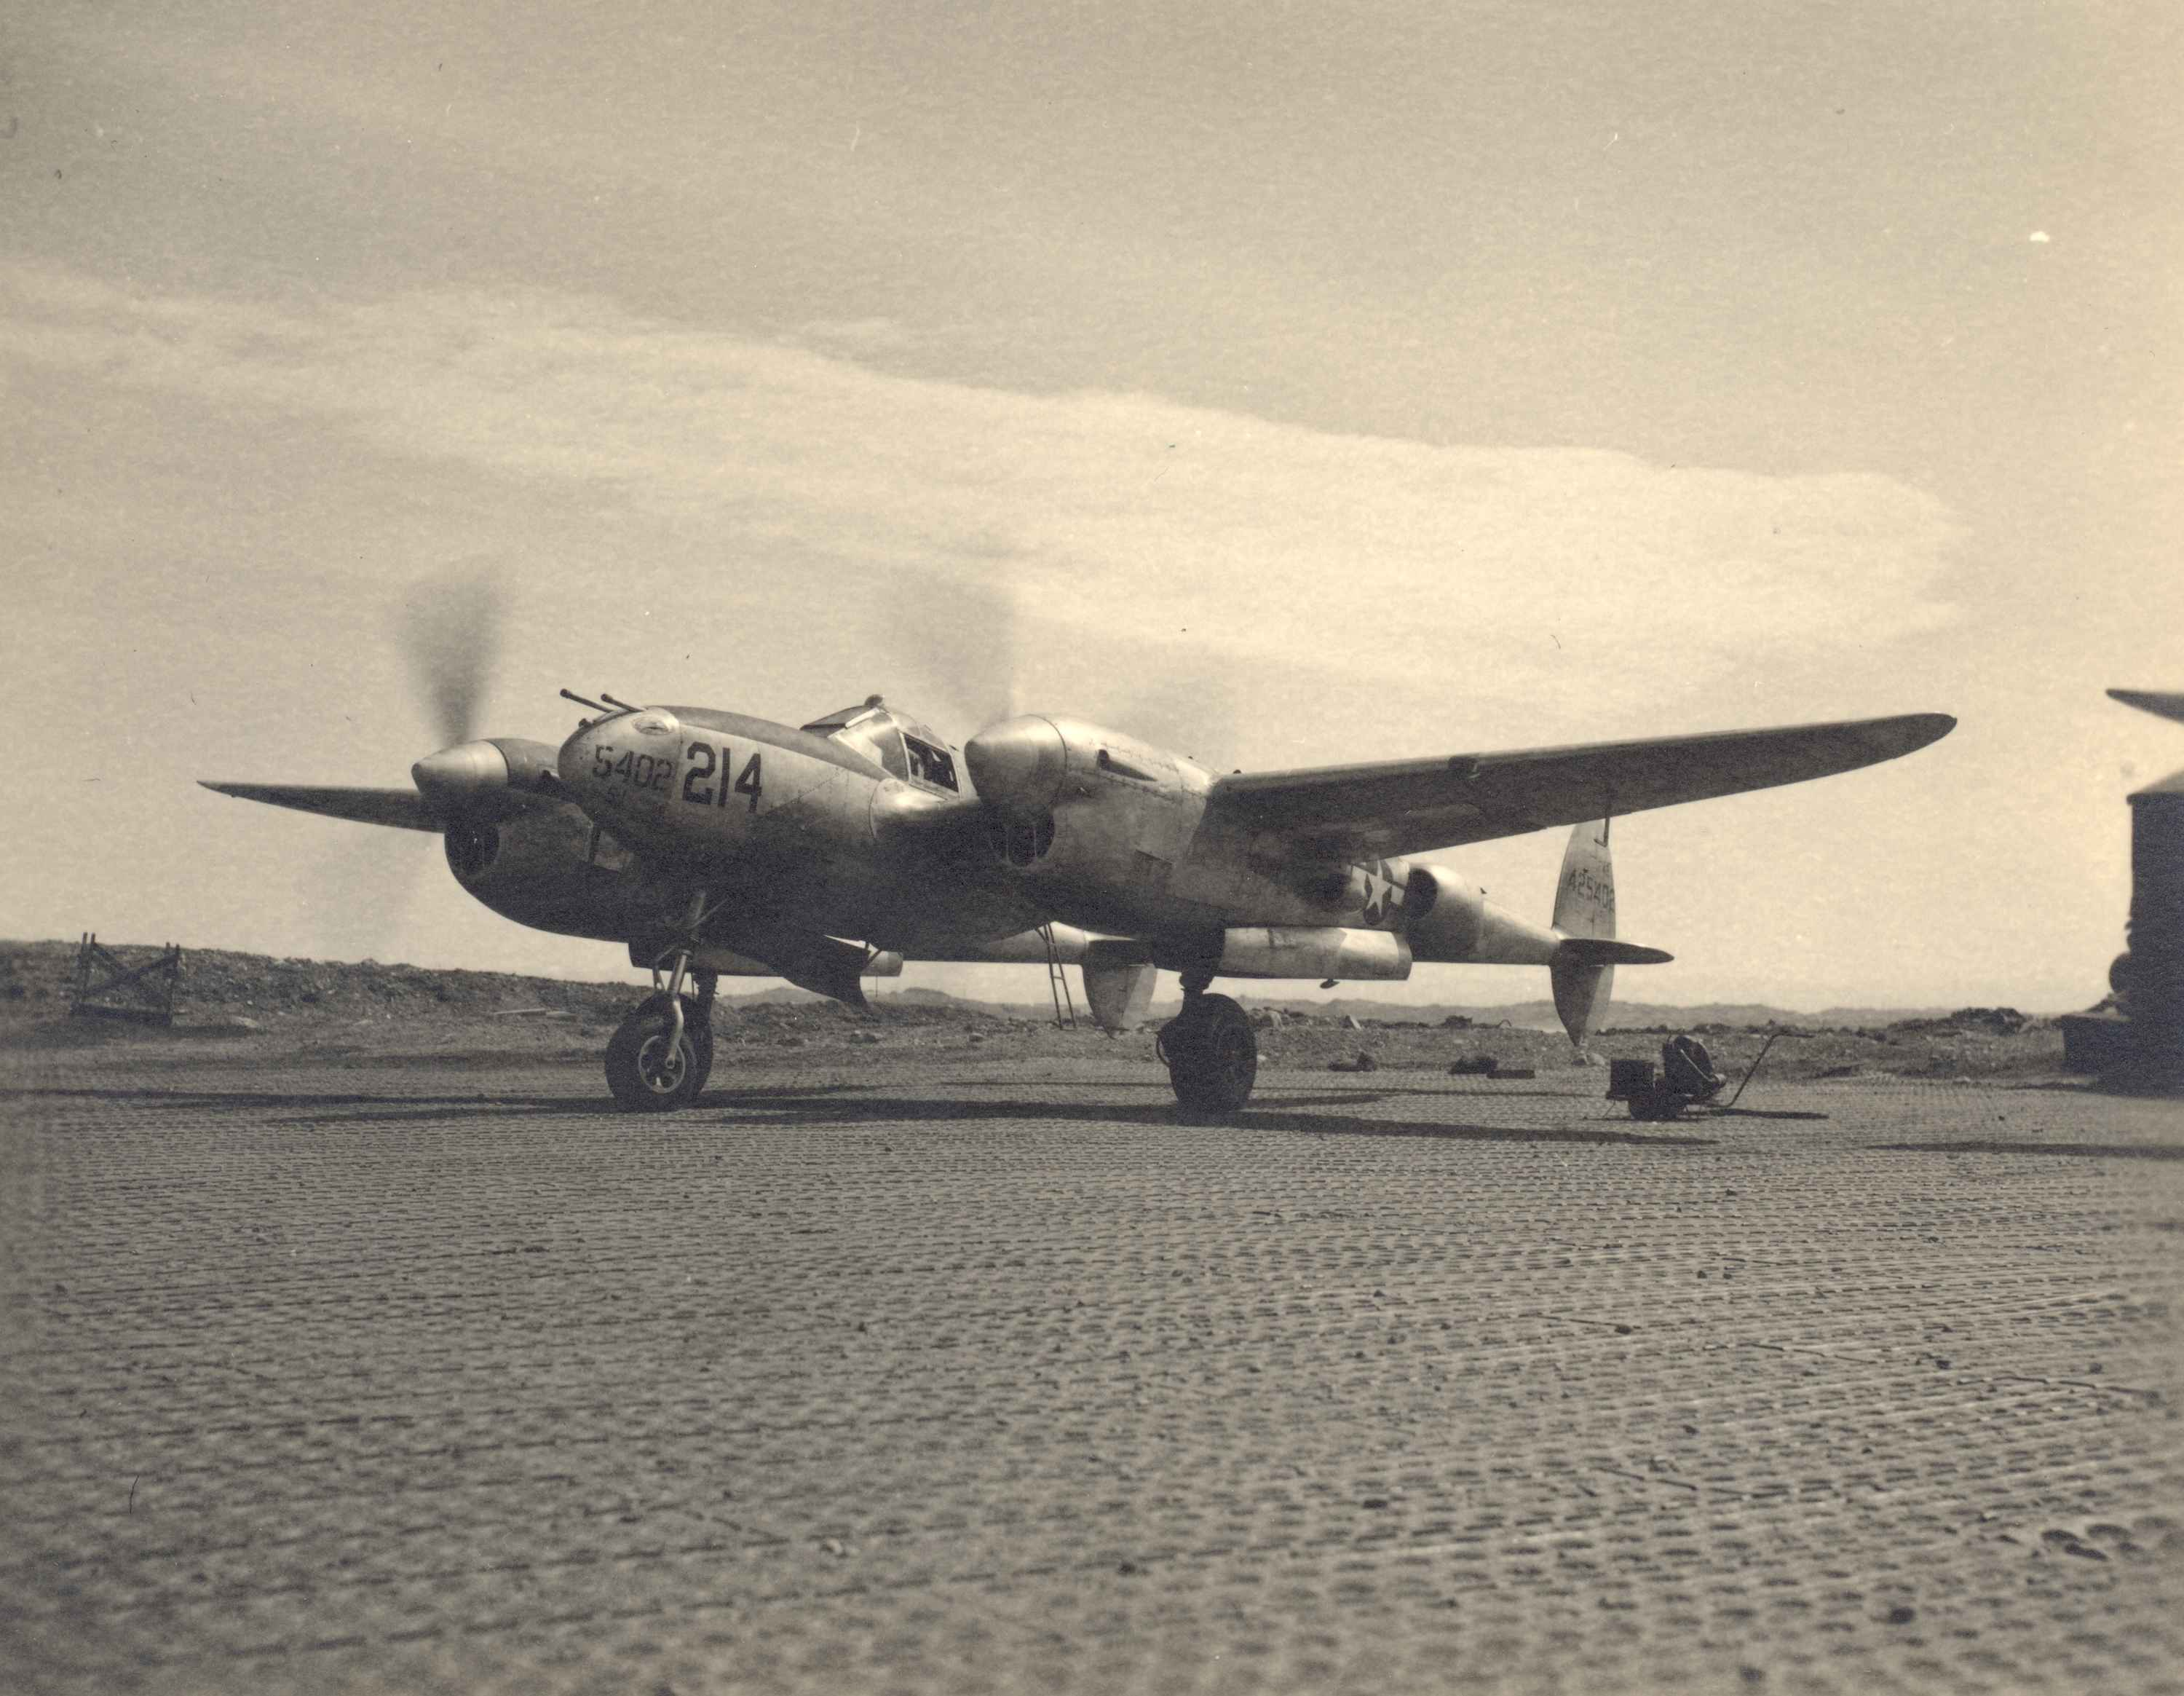 Fileaircraft From World War Ii Ready To Take Off Jpg